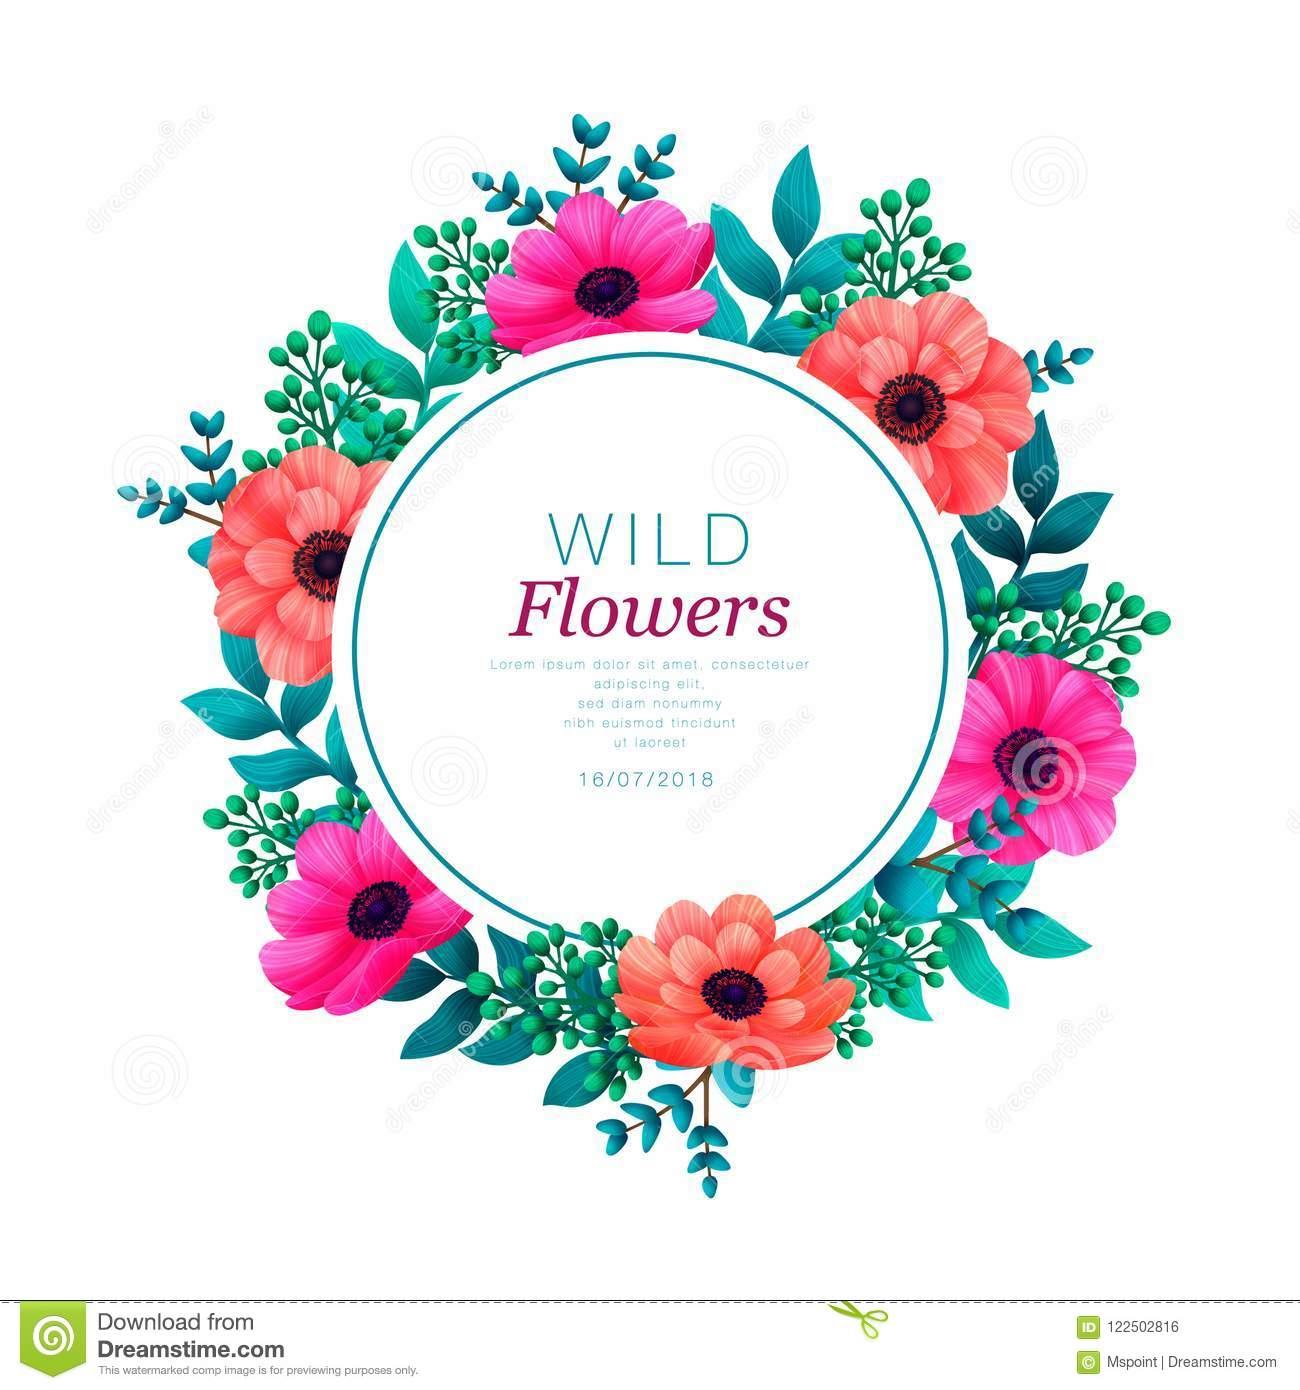 Floral circle frame. Tropical flowers trendy template. Summer Design with beautiful flowers and leaves with copy space